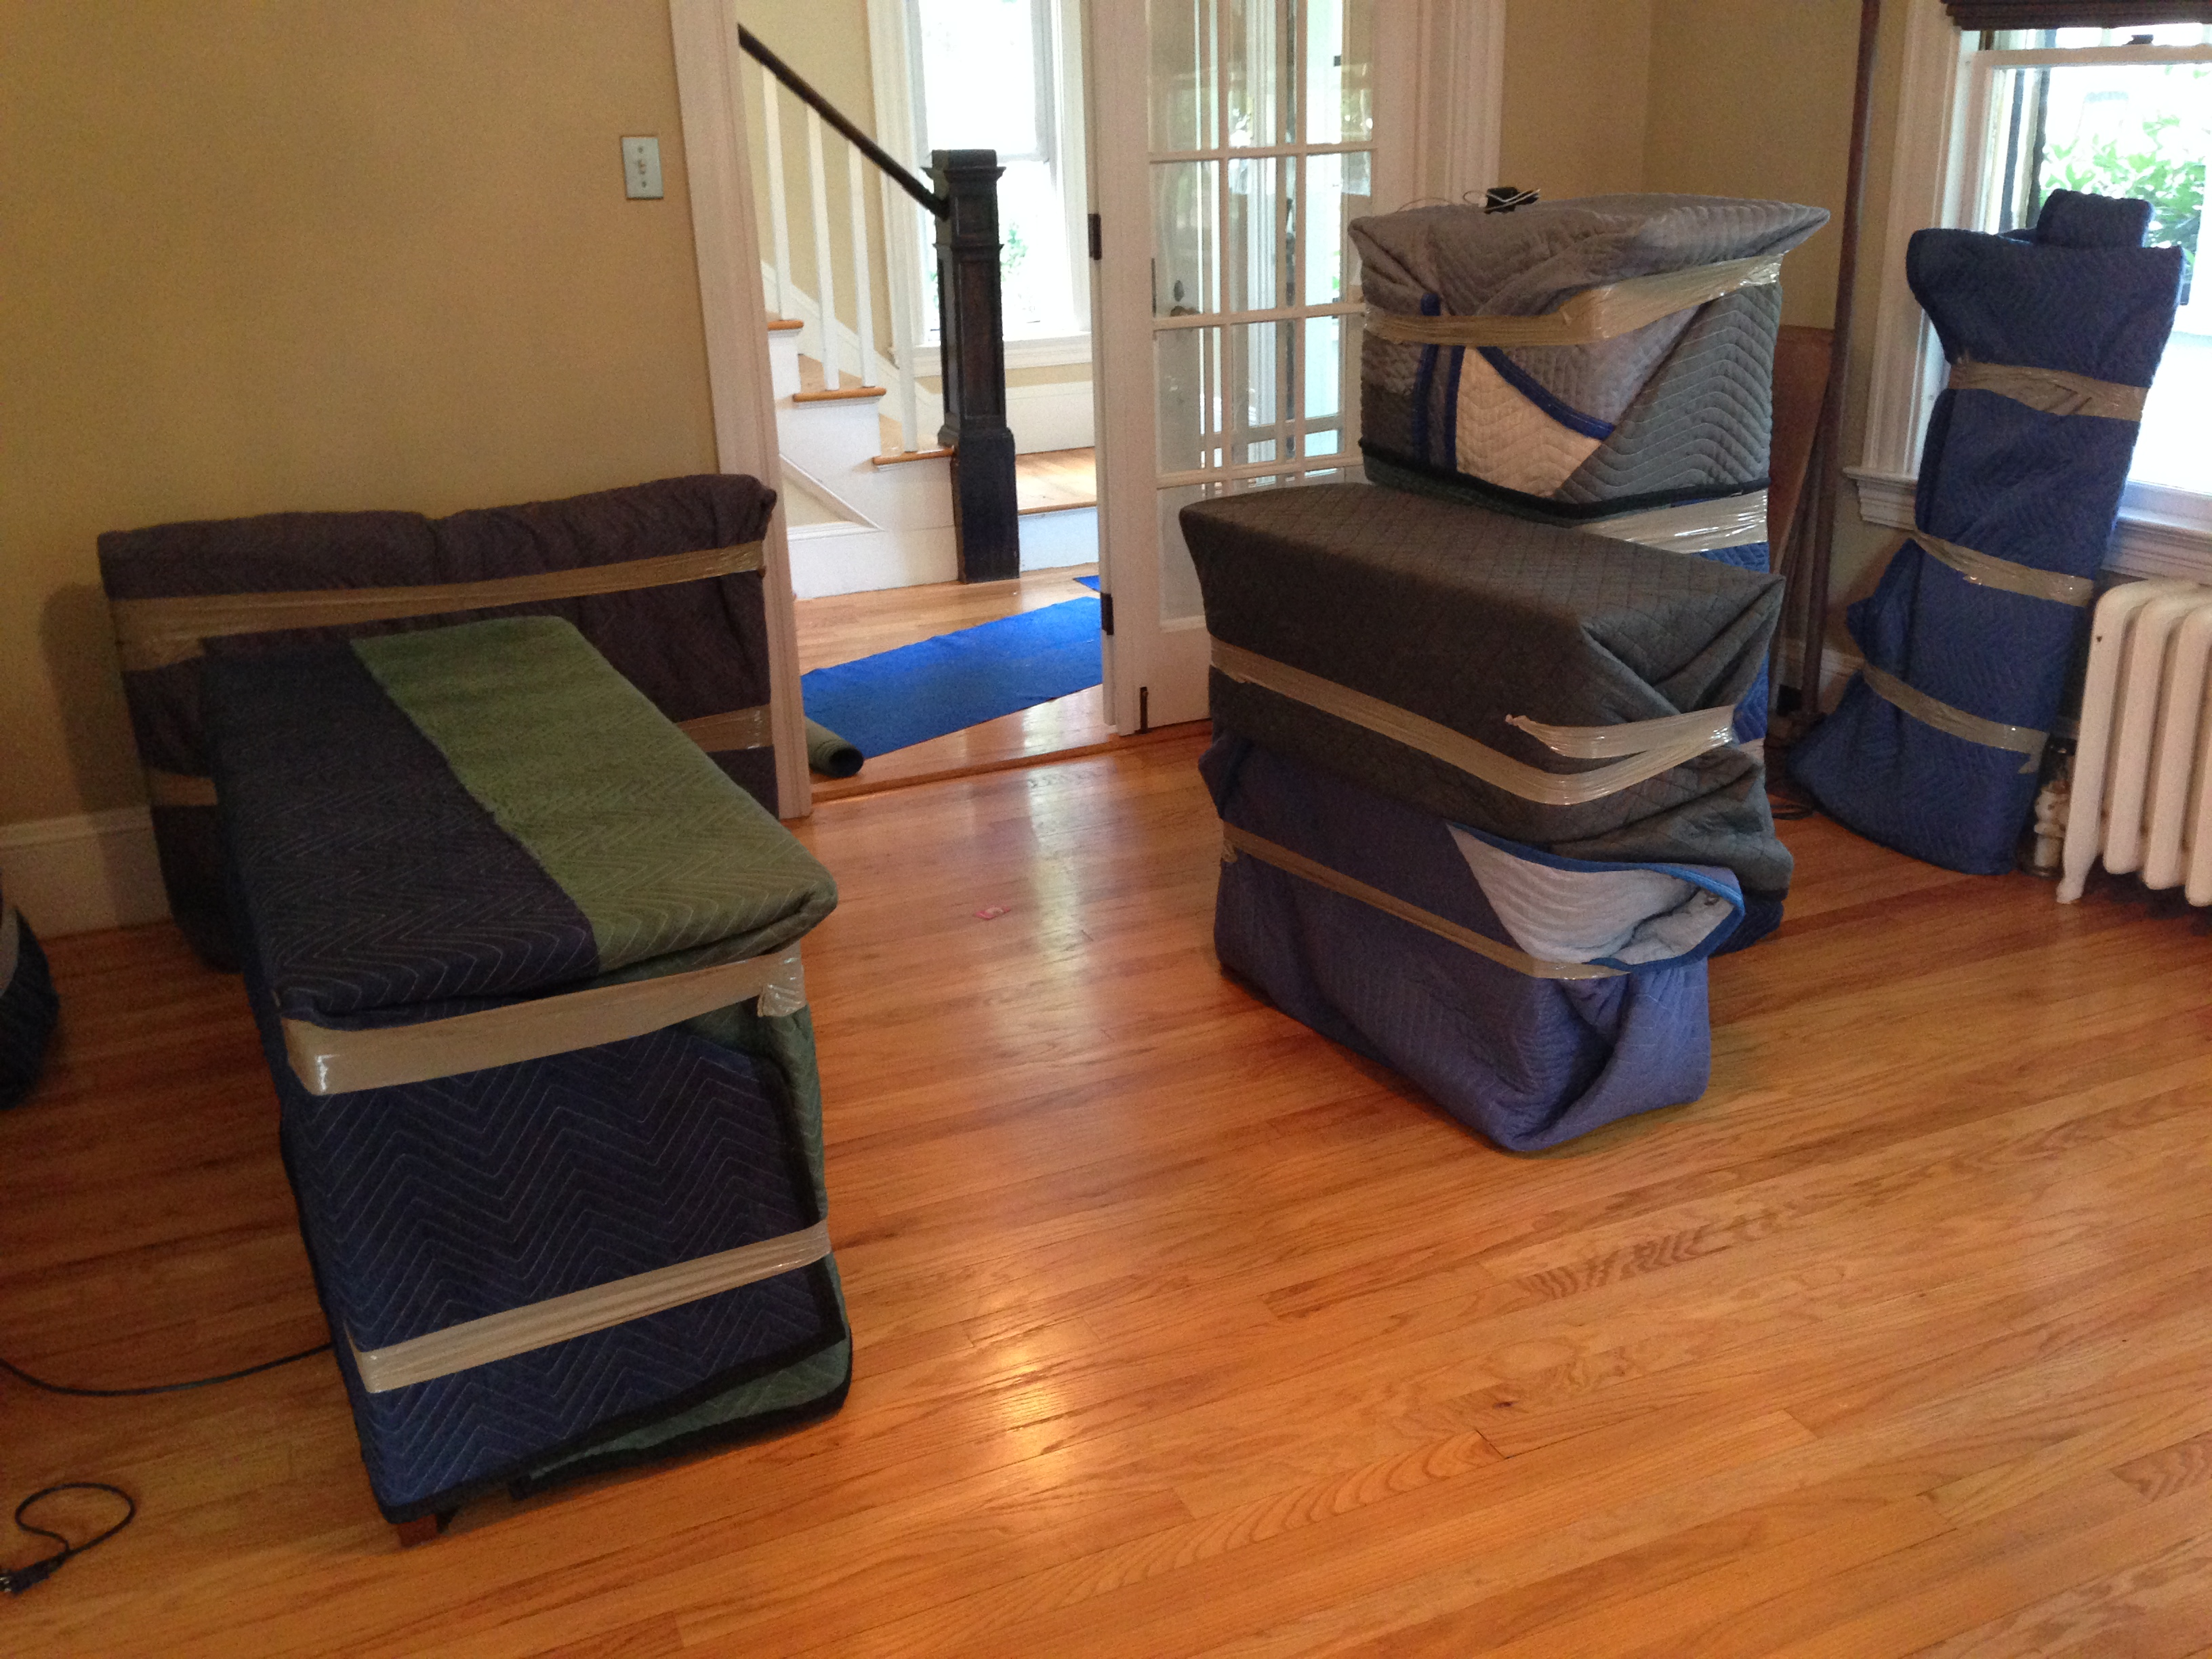 Always Affordable Moving And Storage Metuchen NJ YPcom - Moving furniture